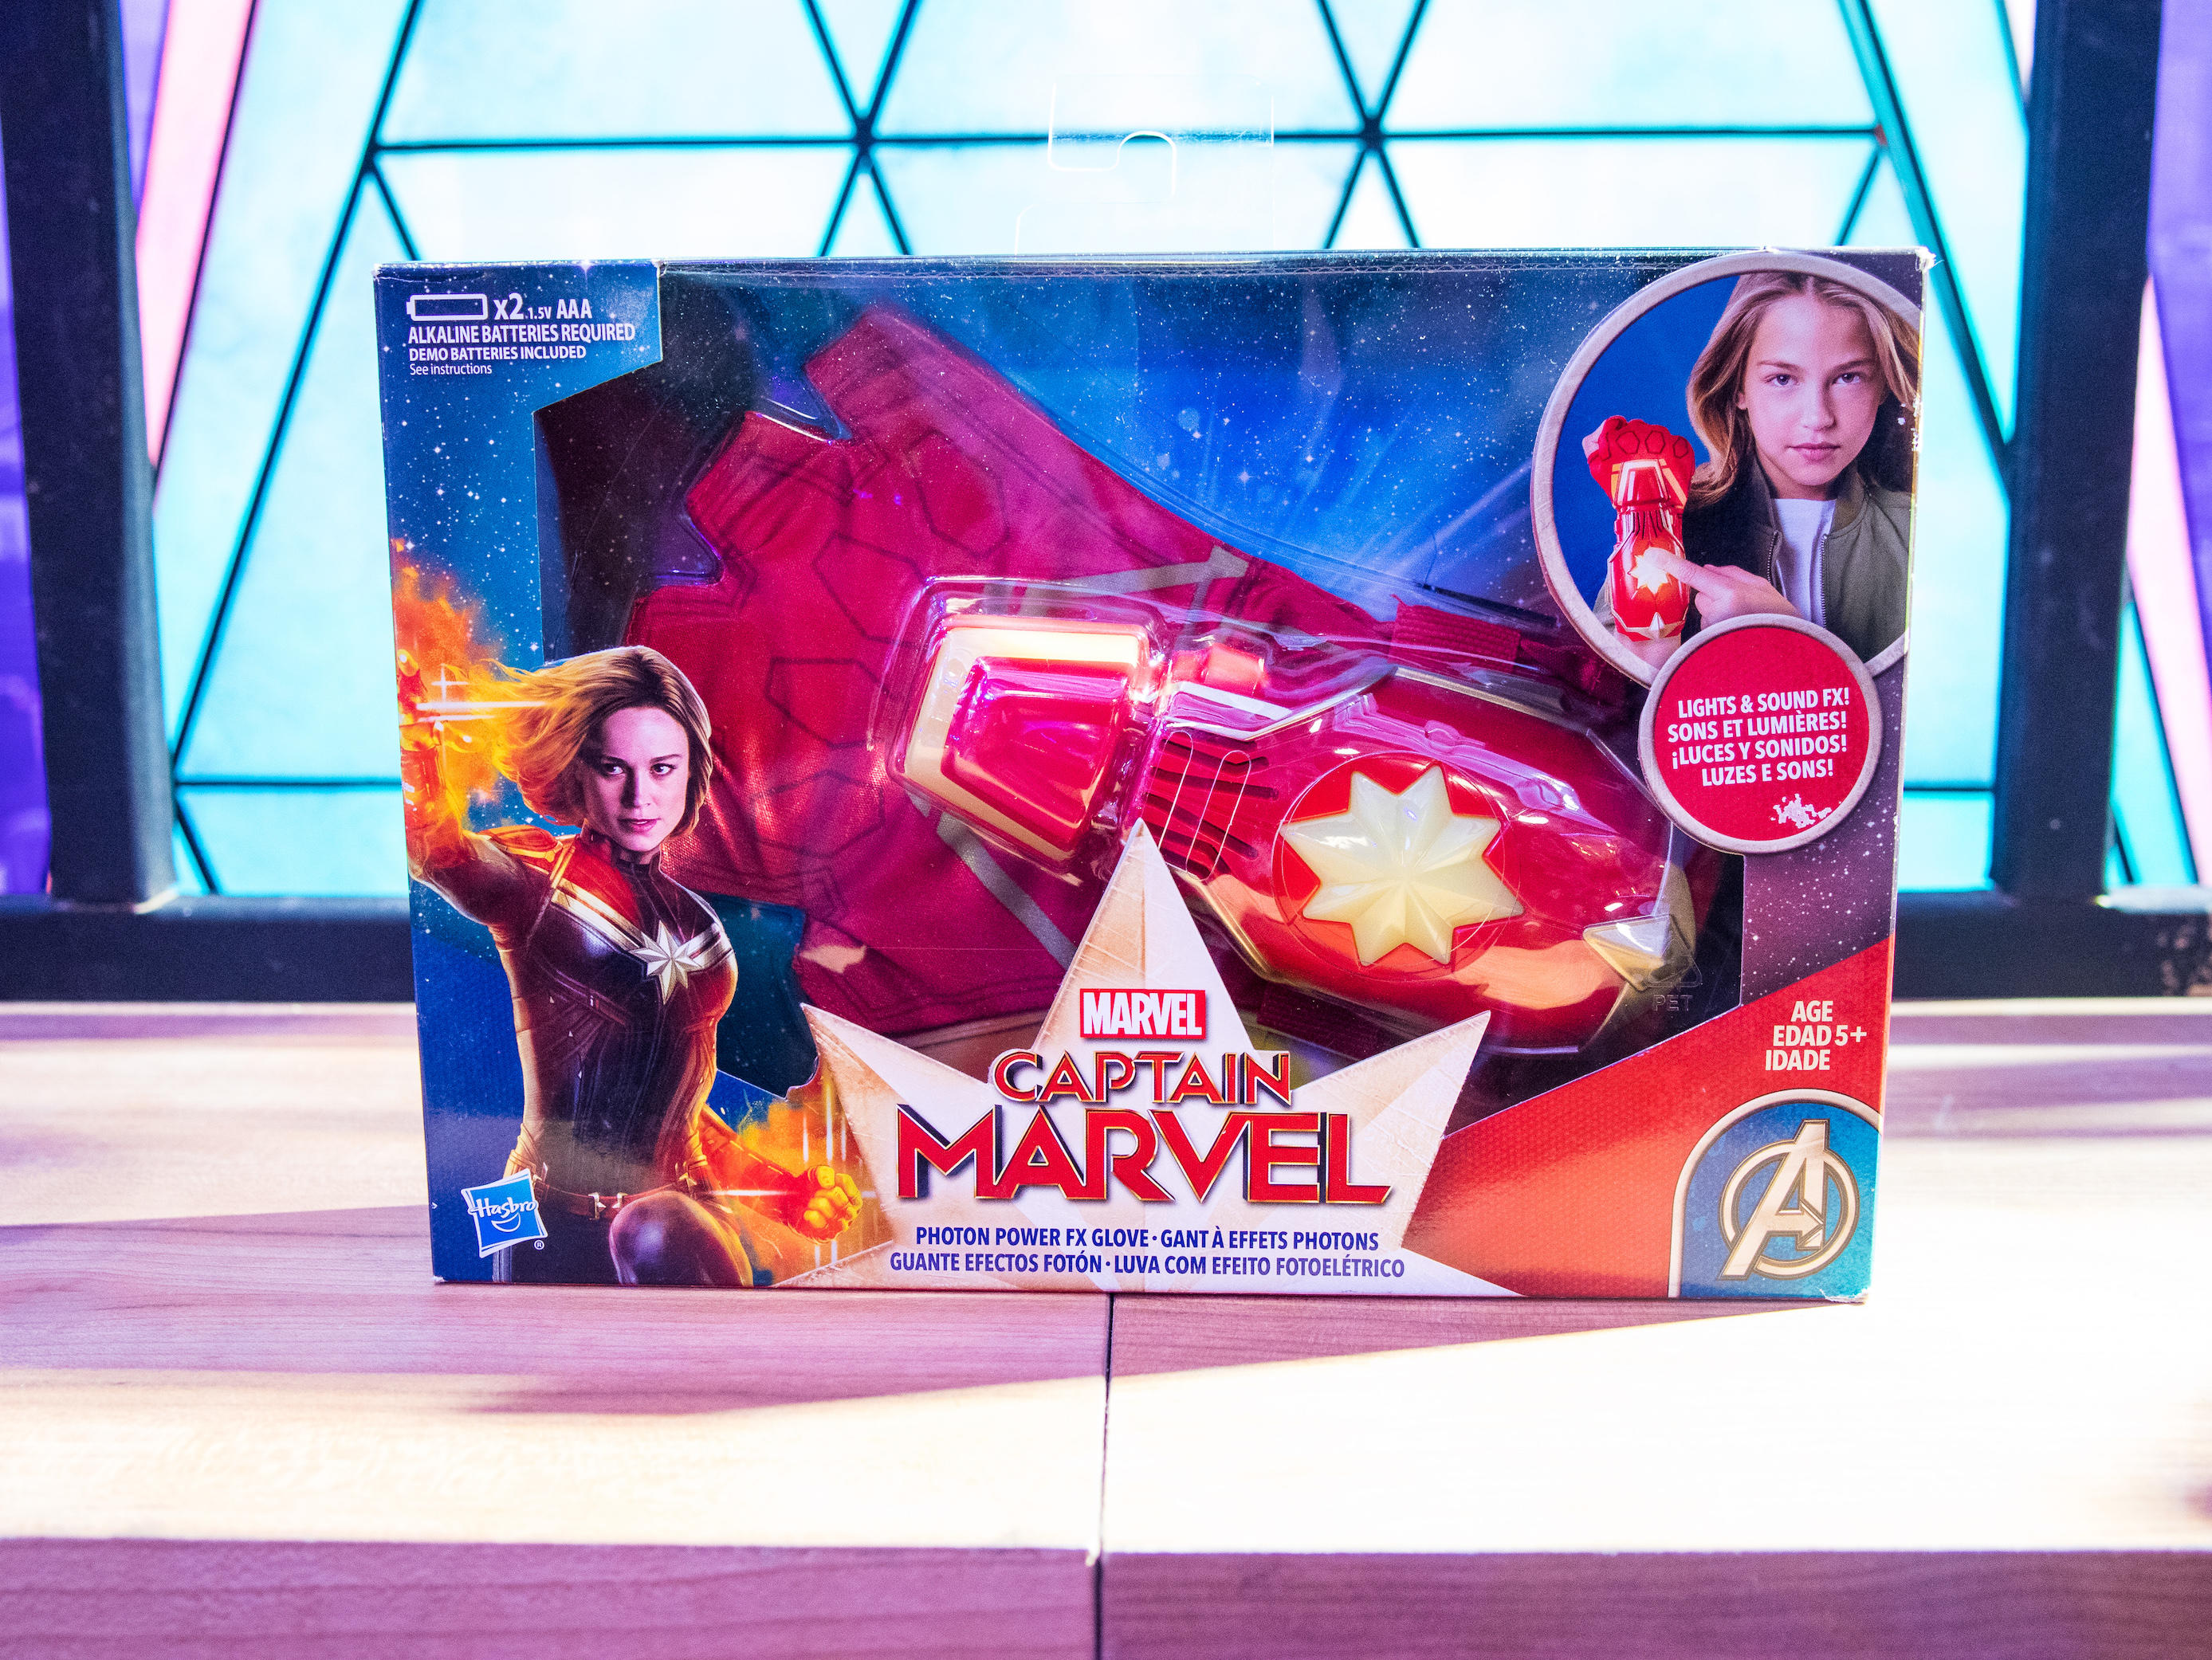 CAPTAIN MARVEL MOVIE PHOTON POWER FX GLOVE